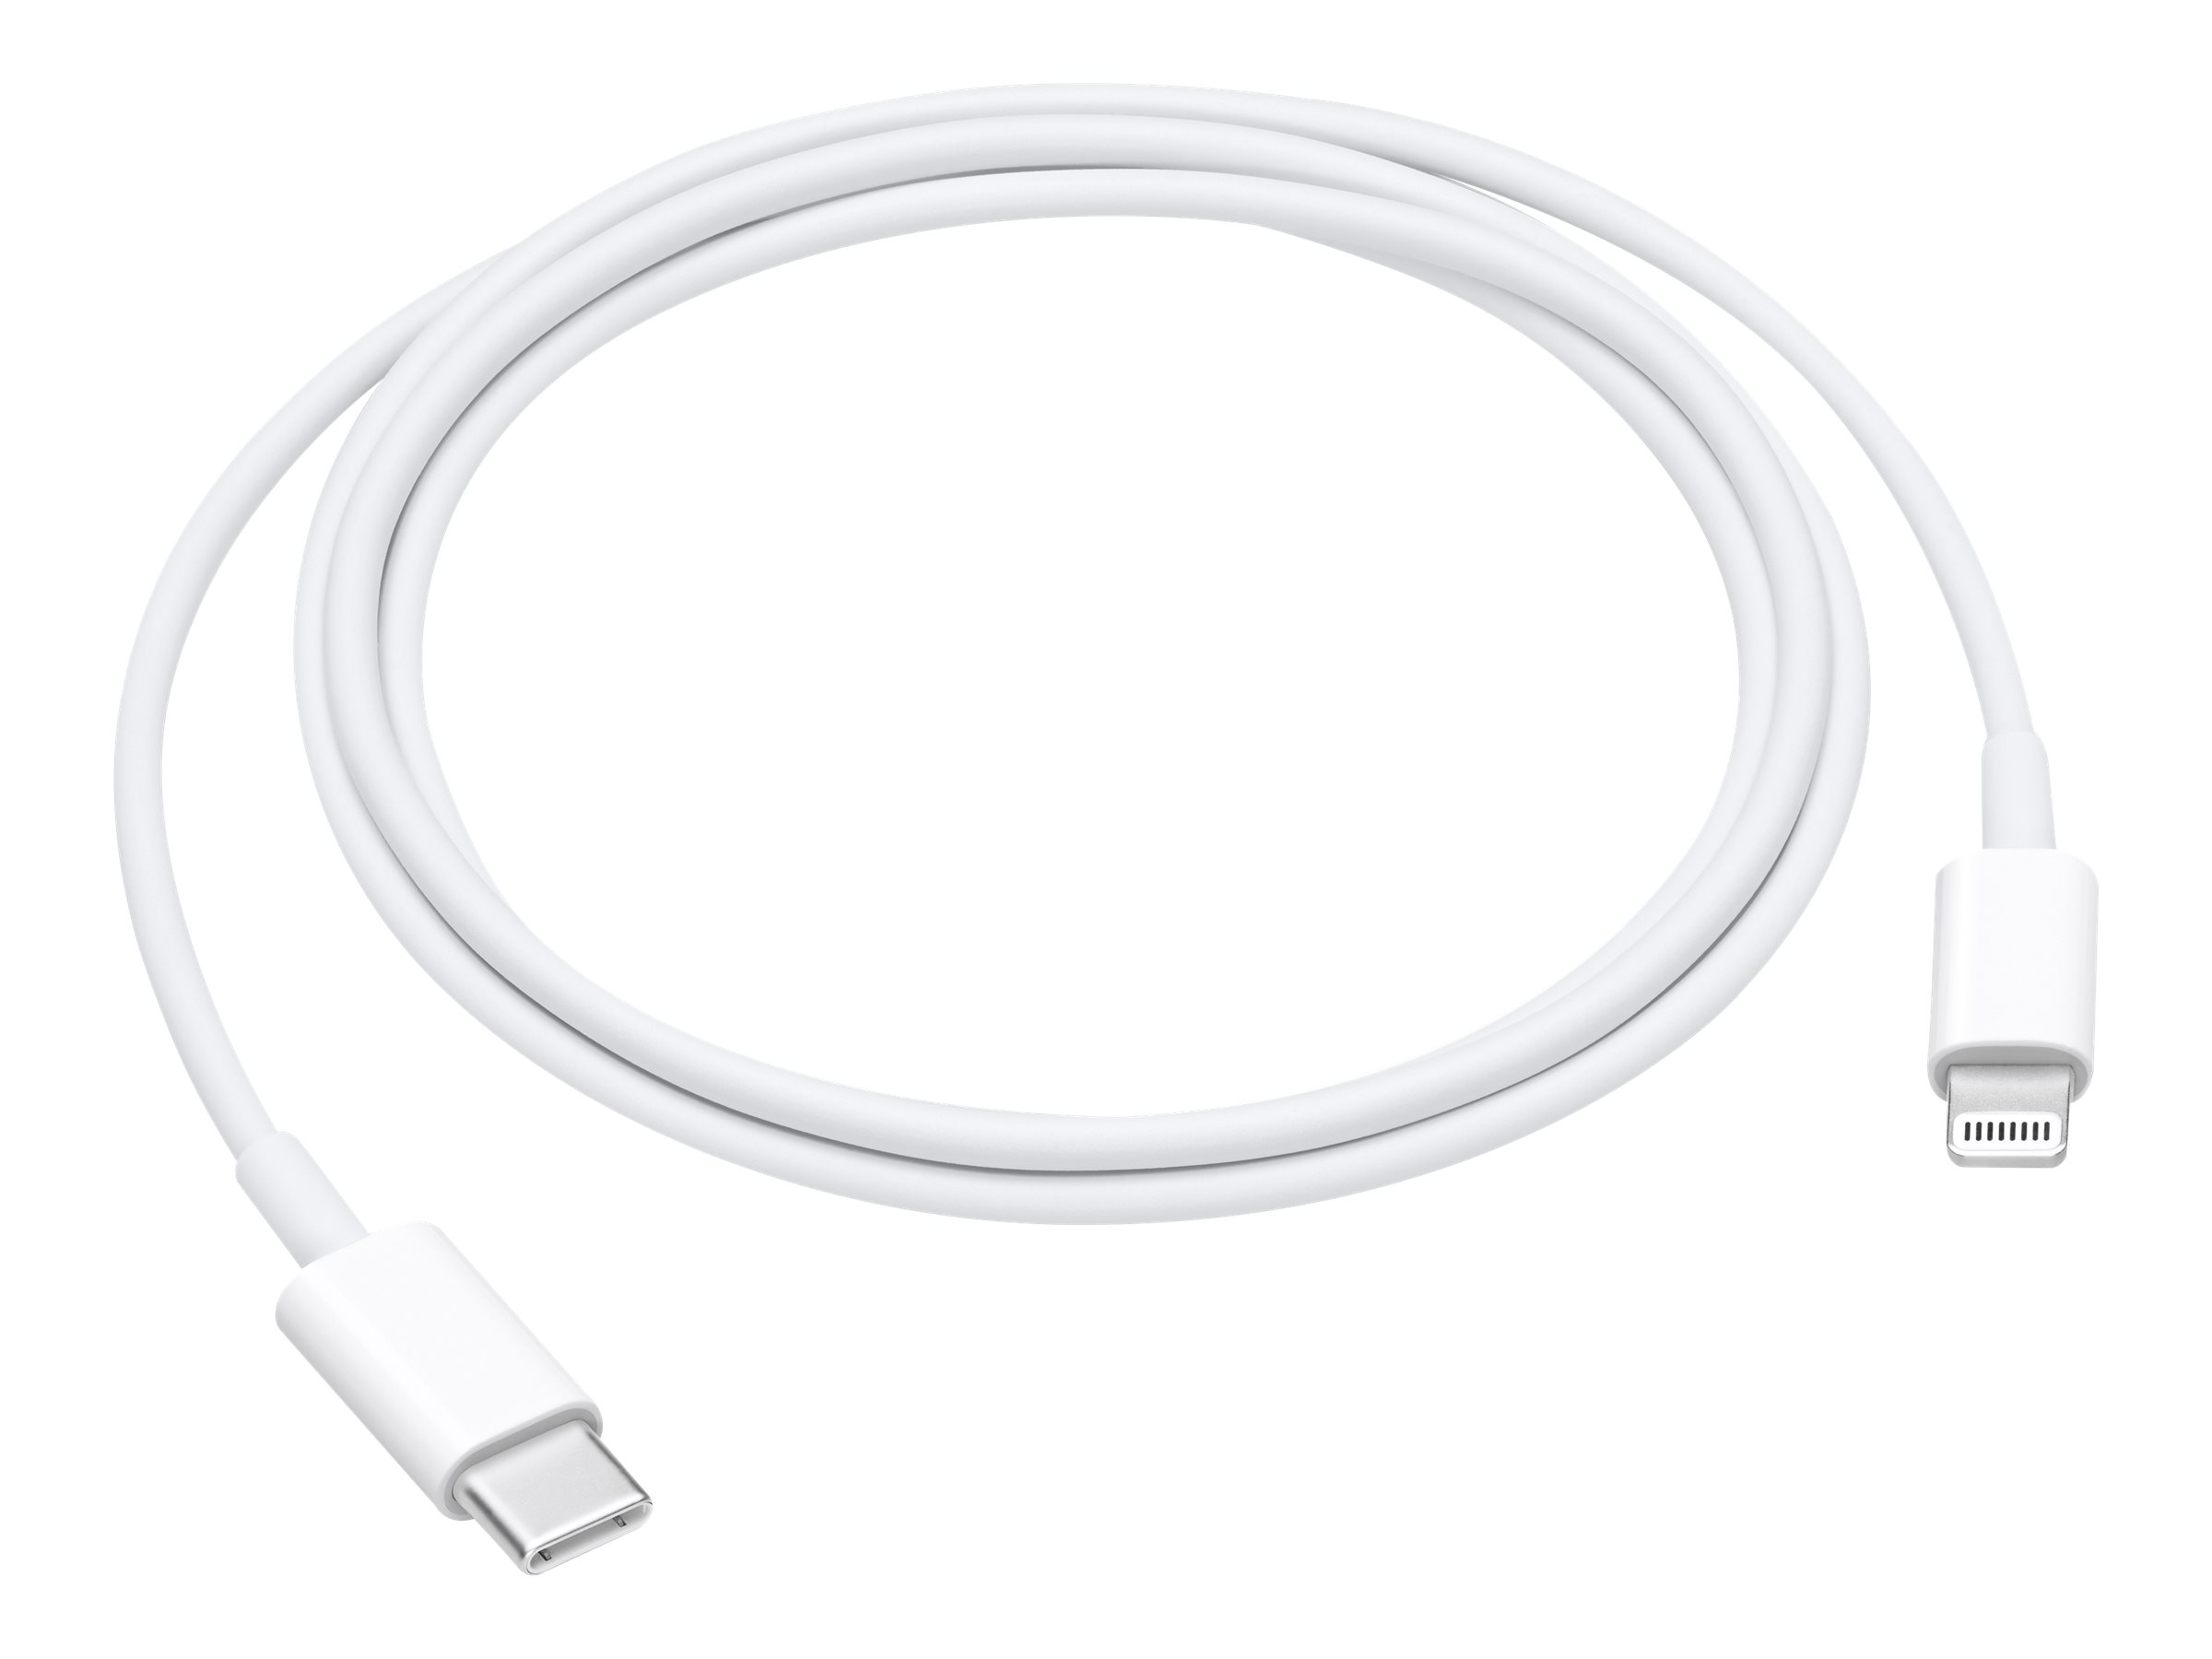 Apple USB-C to Lightning Cable - Lightning cable - Lightning / USB 3.1 - 1 m